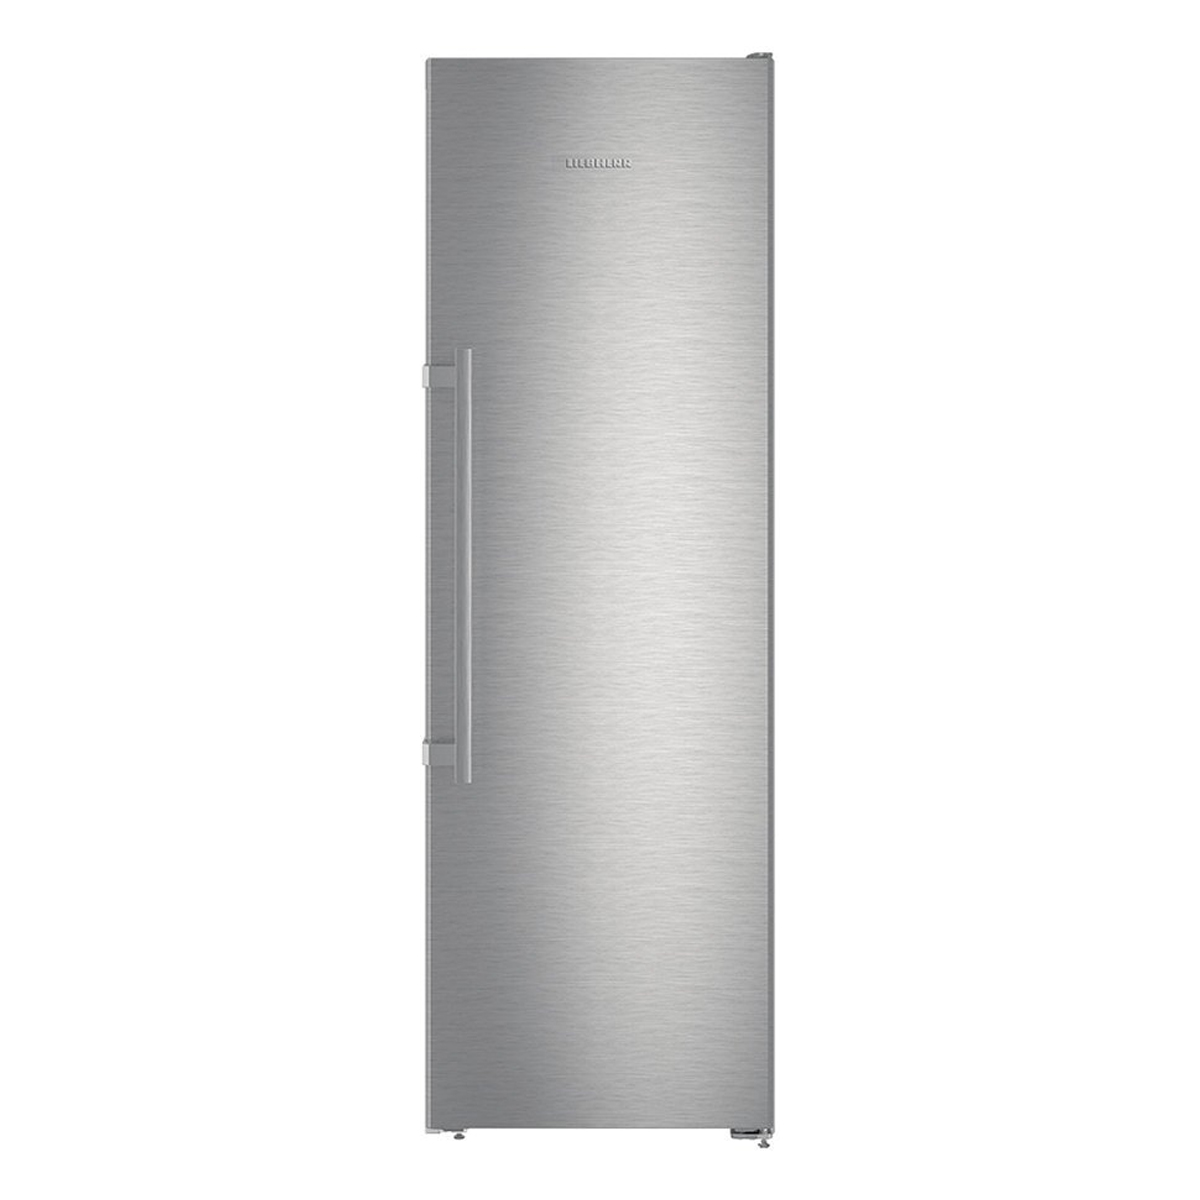 Liebherr SKEF4260 405L Upright Fridge